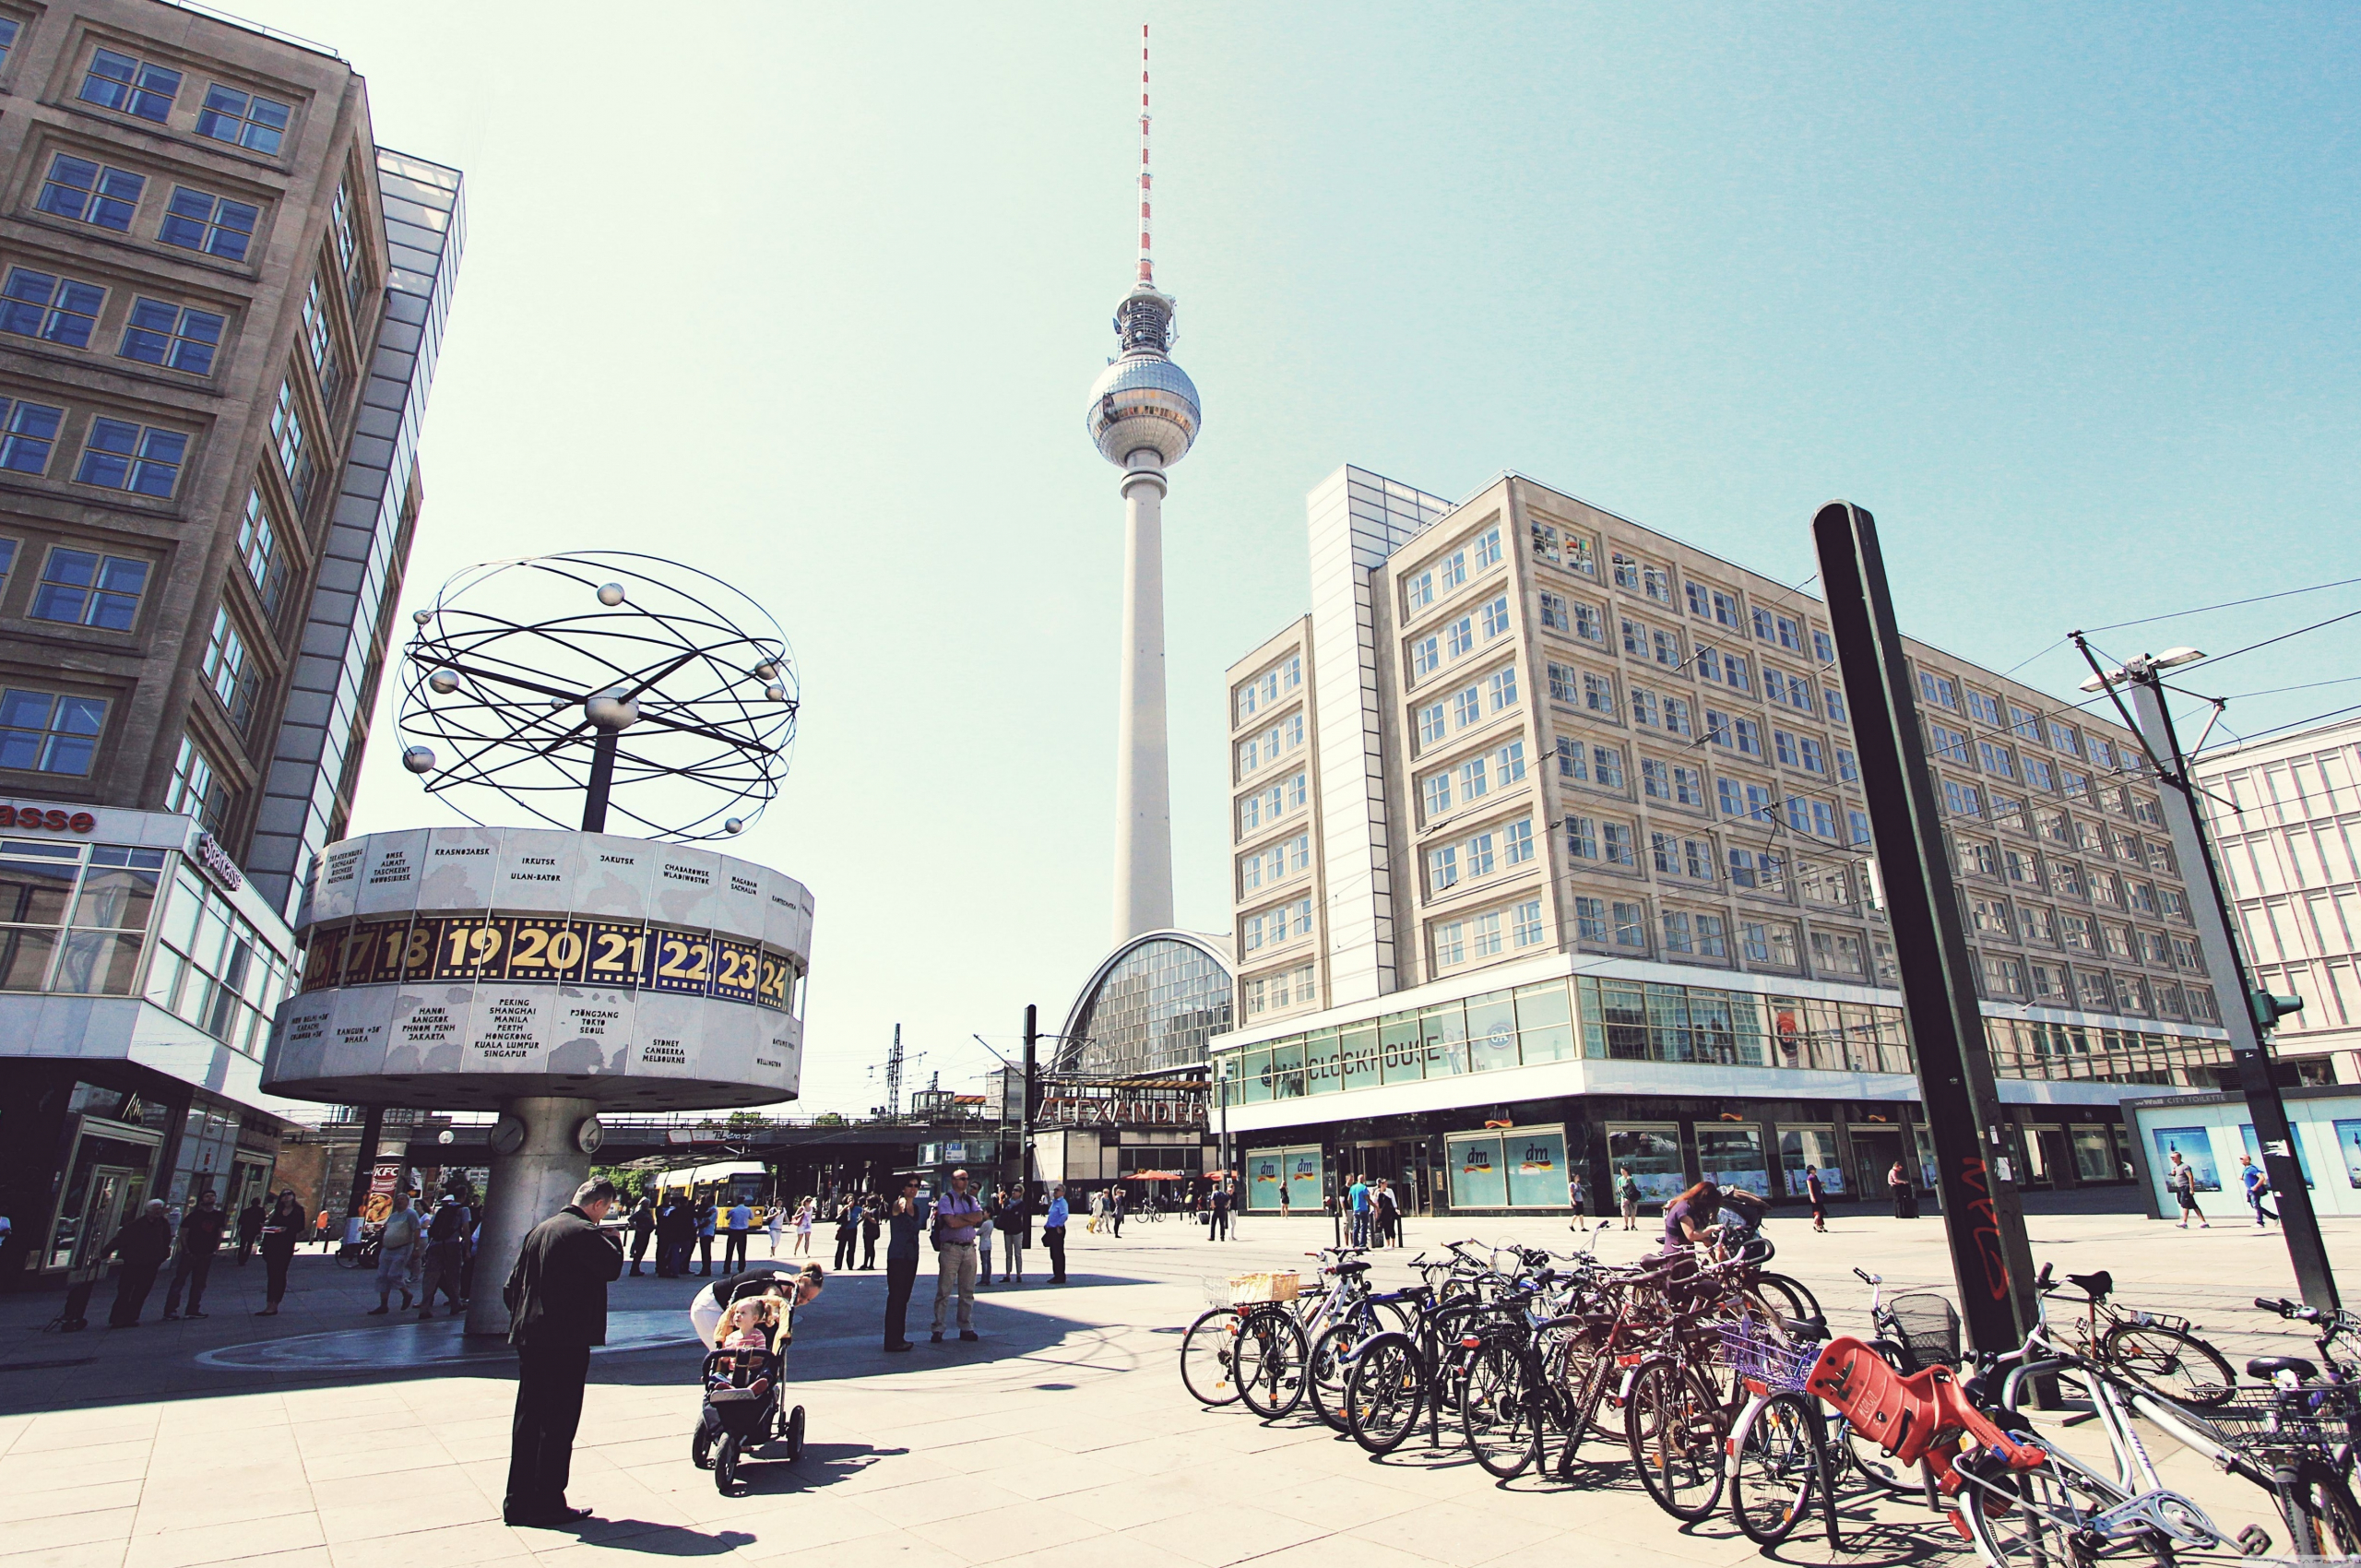 Free Download Berlin Wallpaper 5120x3200 For Your Desktop Images, Photos, Reviews